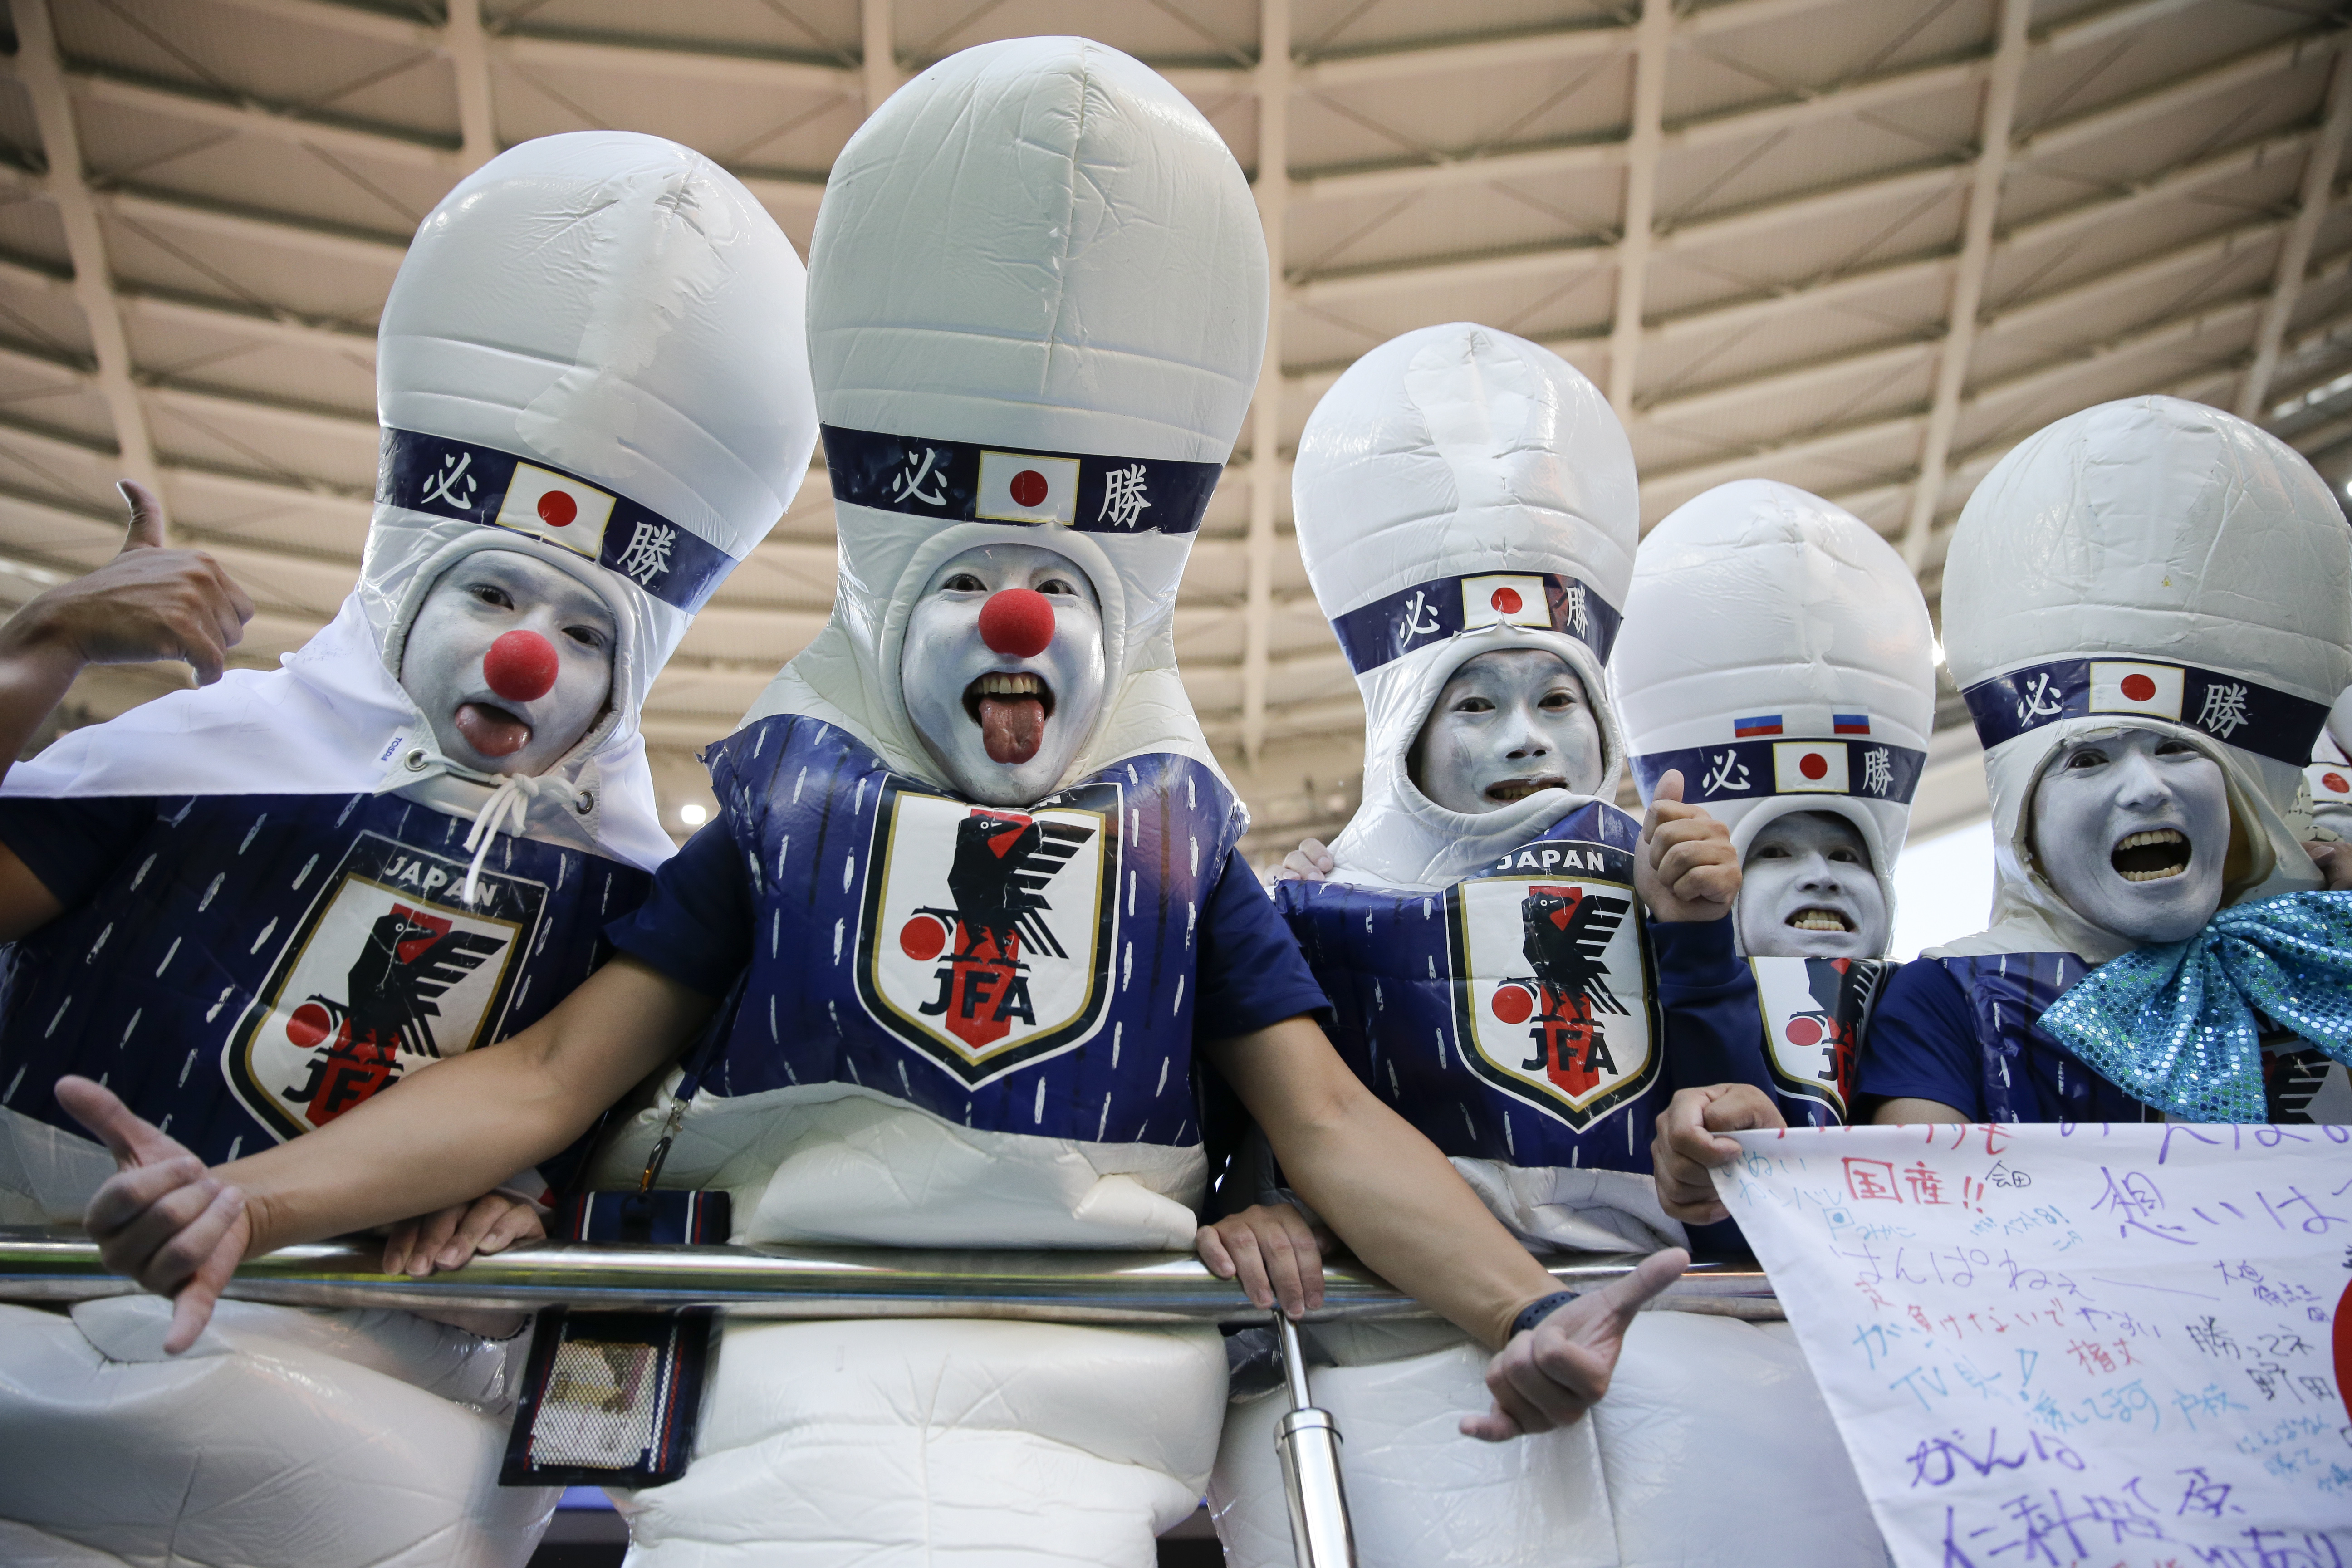 <div class='meta'><div class='origin-logo' data-origin='none'></div><span class='caption-text' data-credit='Natacha Pisarenko/AP Photo'>Japan fans support their team prior to the start of the group H match between Japan and Senegal at the Yekaterinburg Arena in Yekaterinburg, Russia, Sunday, June 24, 2018.</span></div>